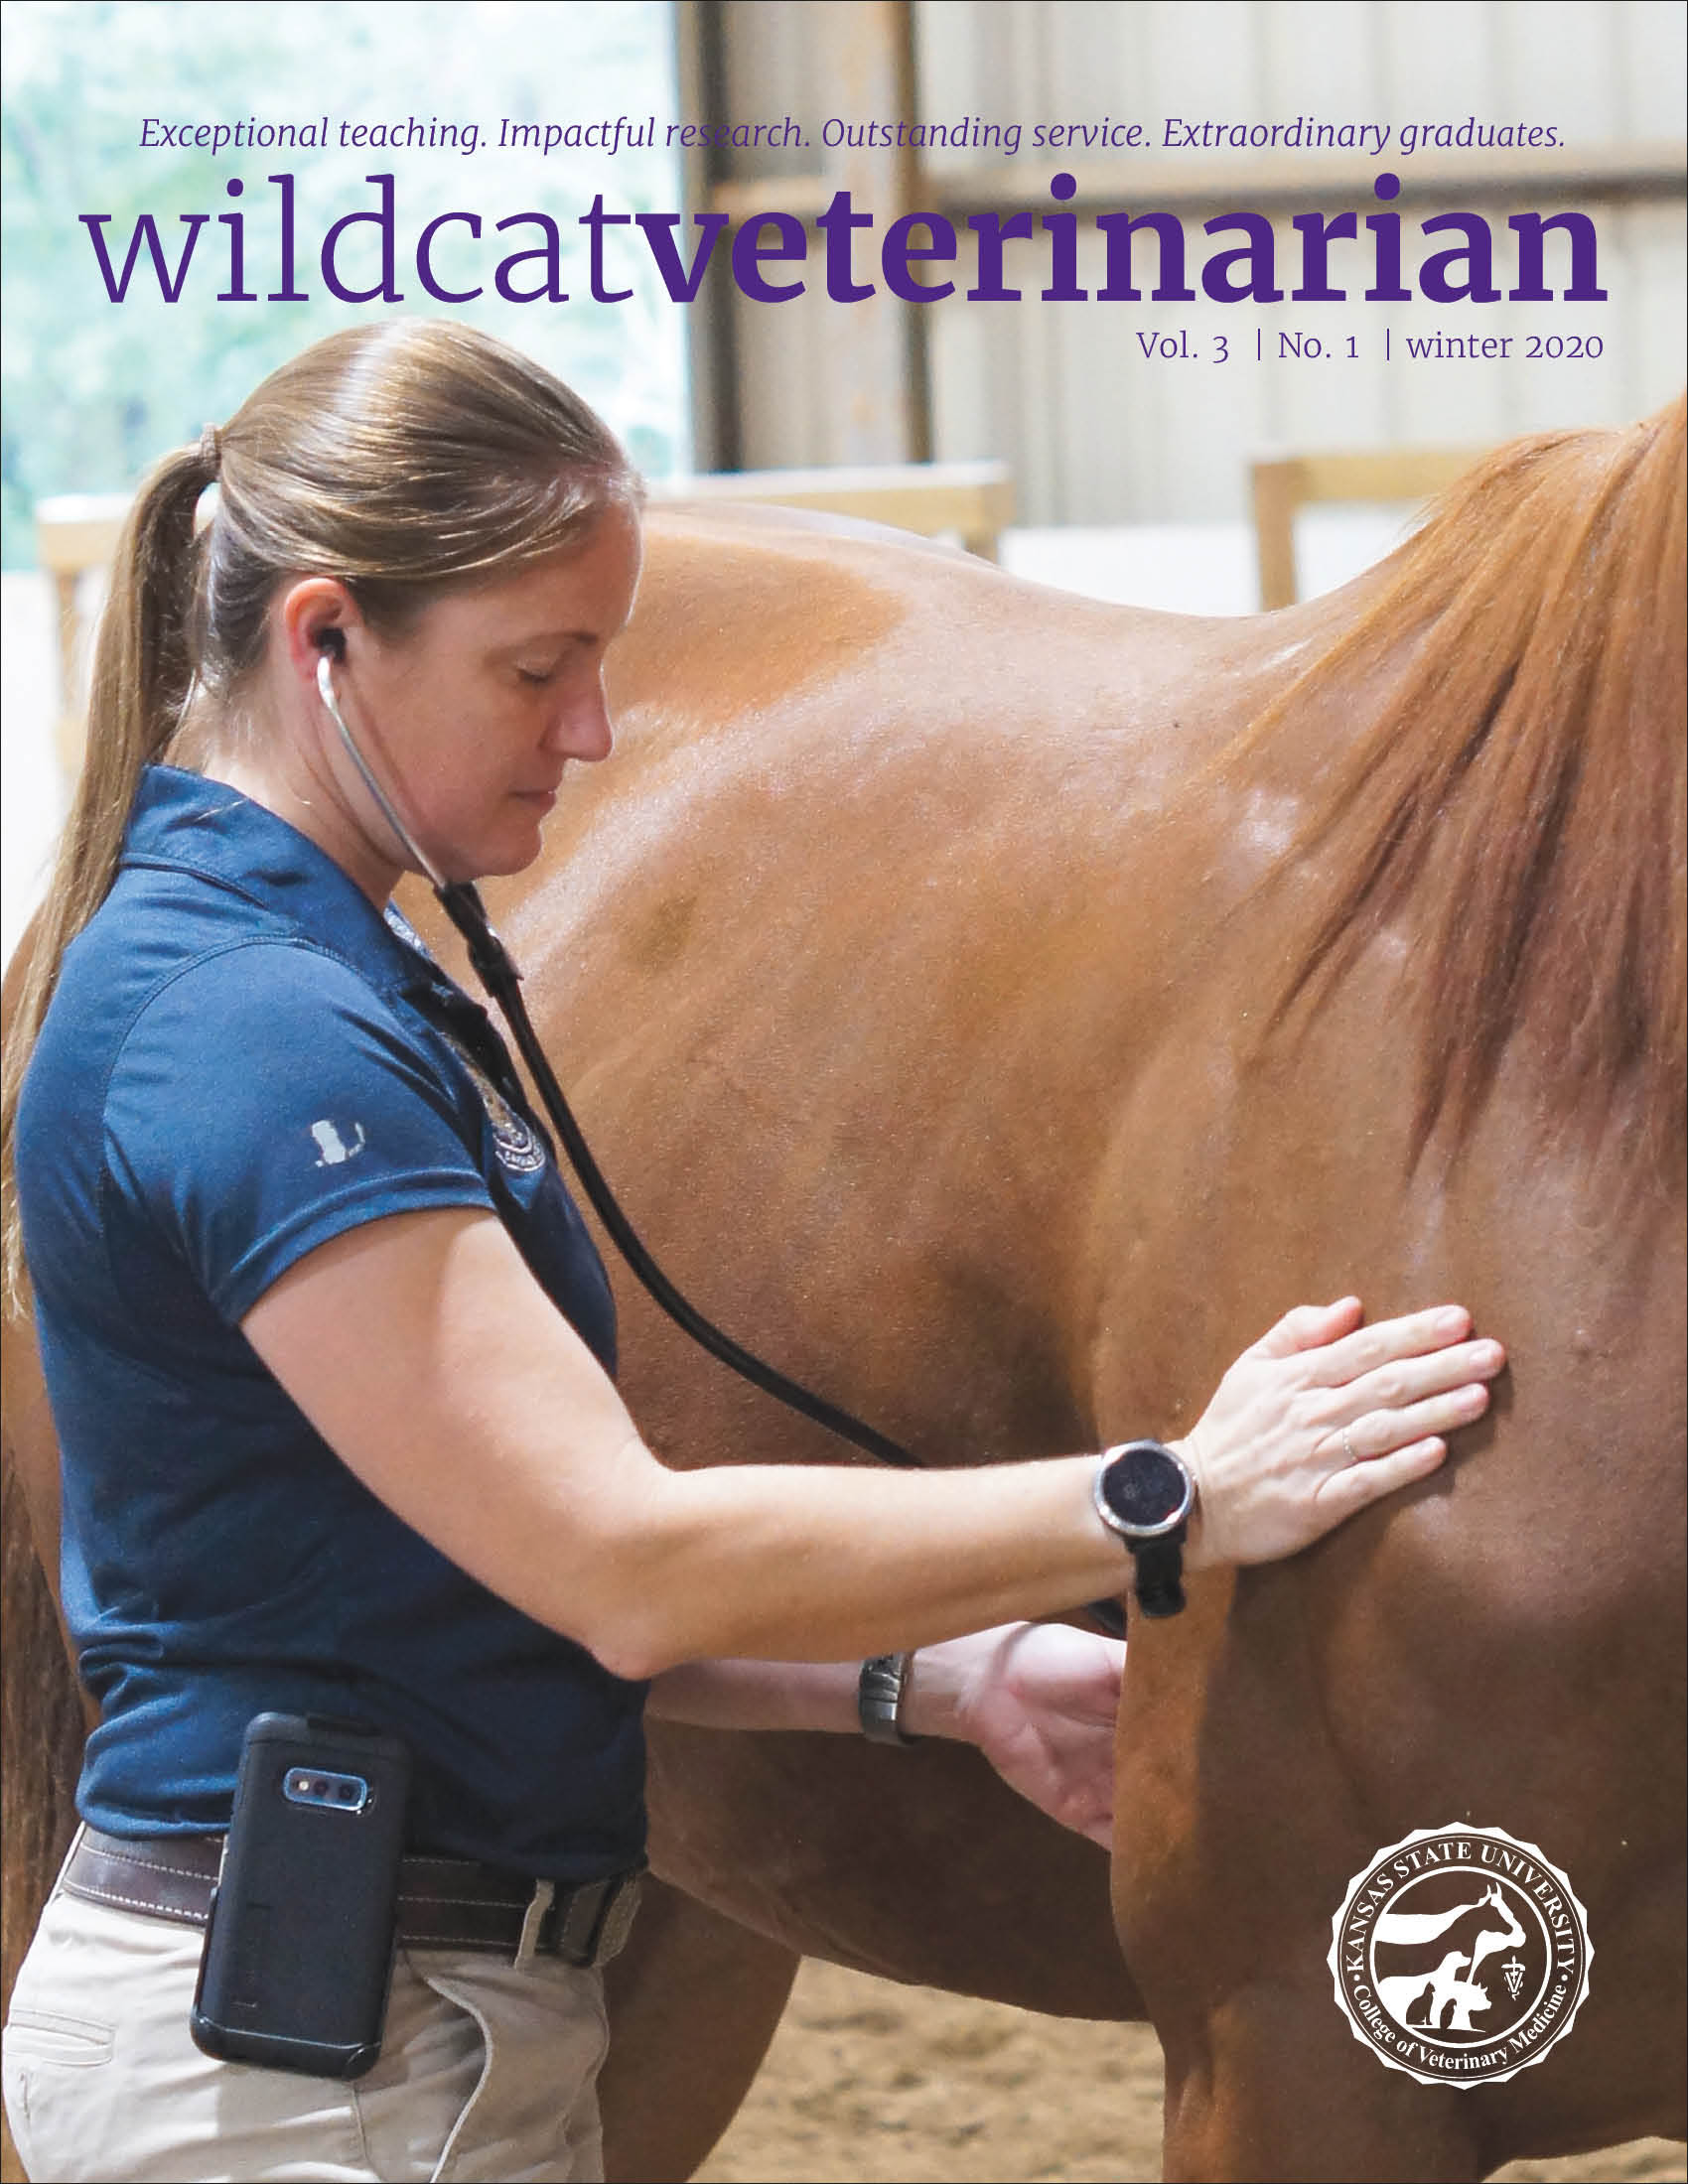 Wildcat Veterinarian